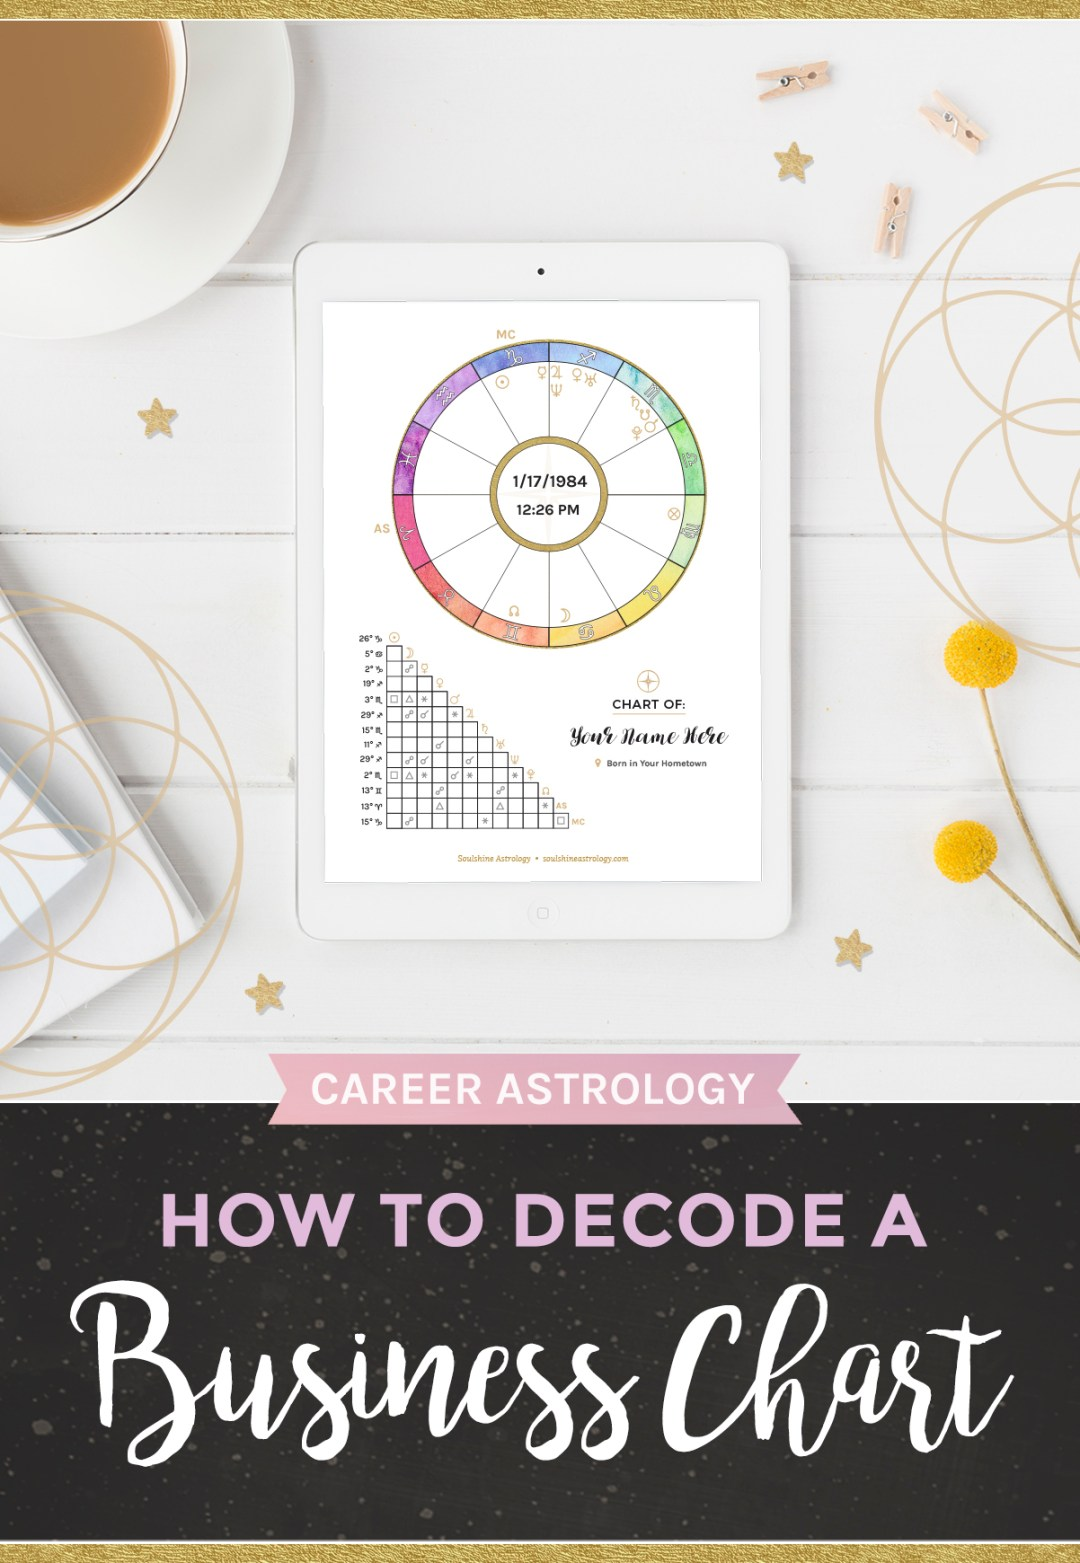 Career Astrology Your Business Has A Birth Chart